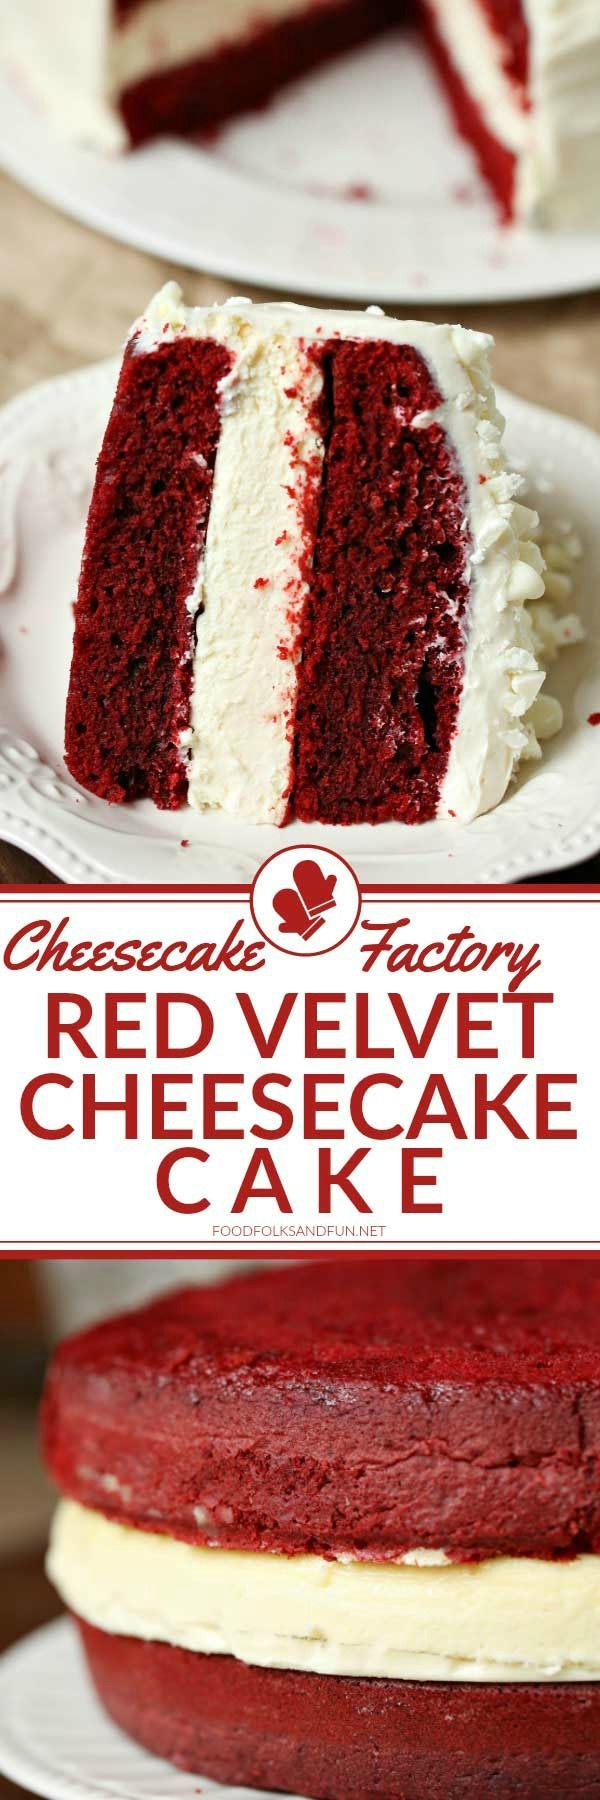 This Cheesecake Factory Red Velvet Cheesecake Cake Recipe is simply AMAZING! Wow your guests for Valentine's Day, Christmas, Birthdays, and dinner parties!